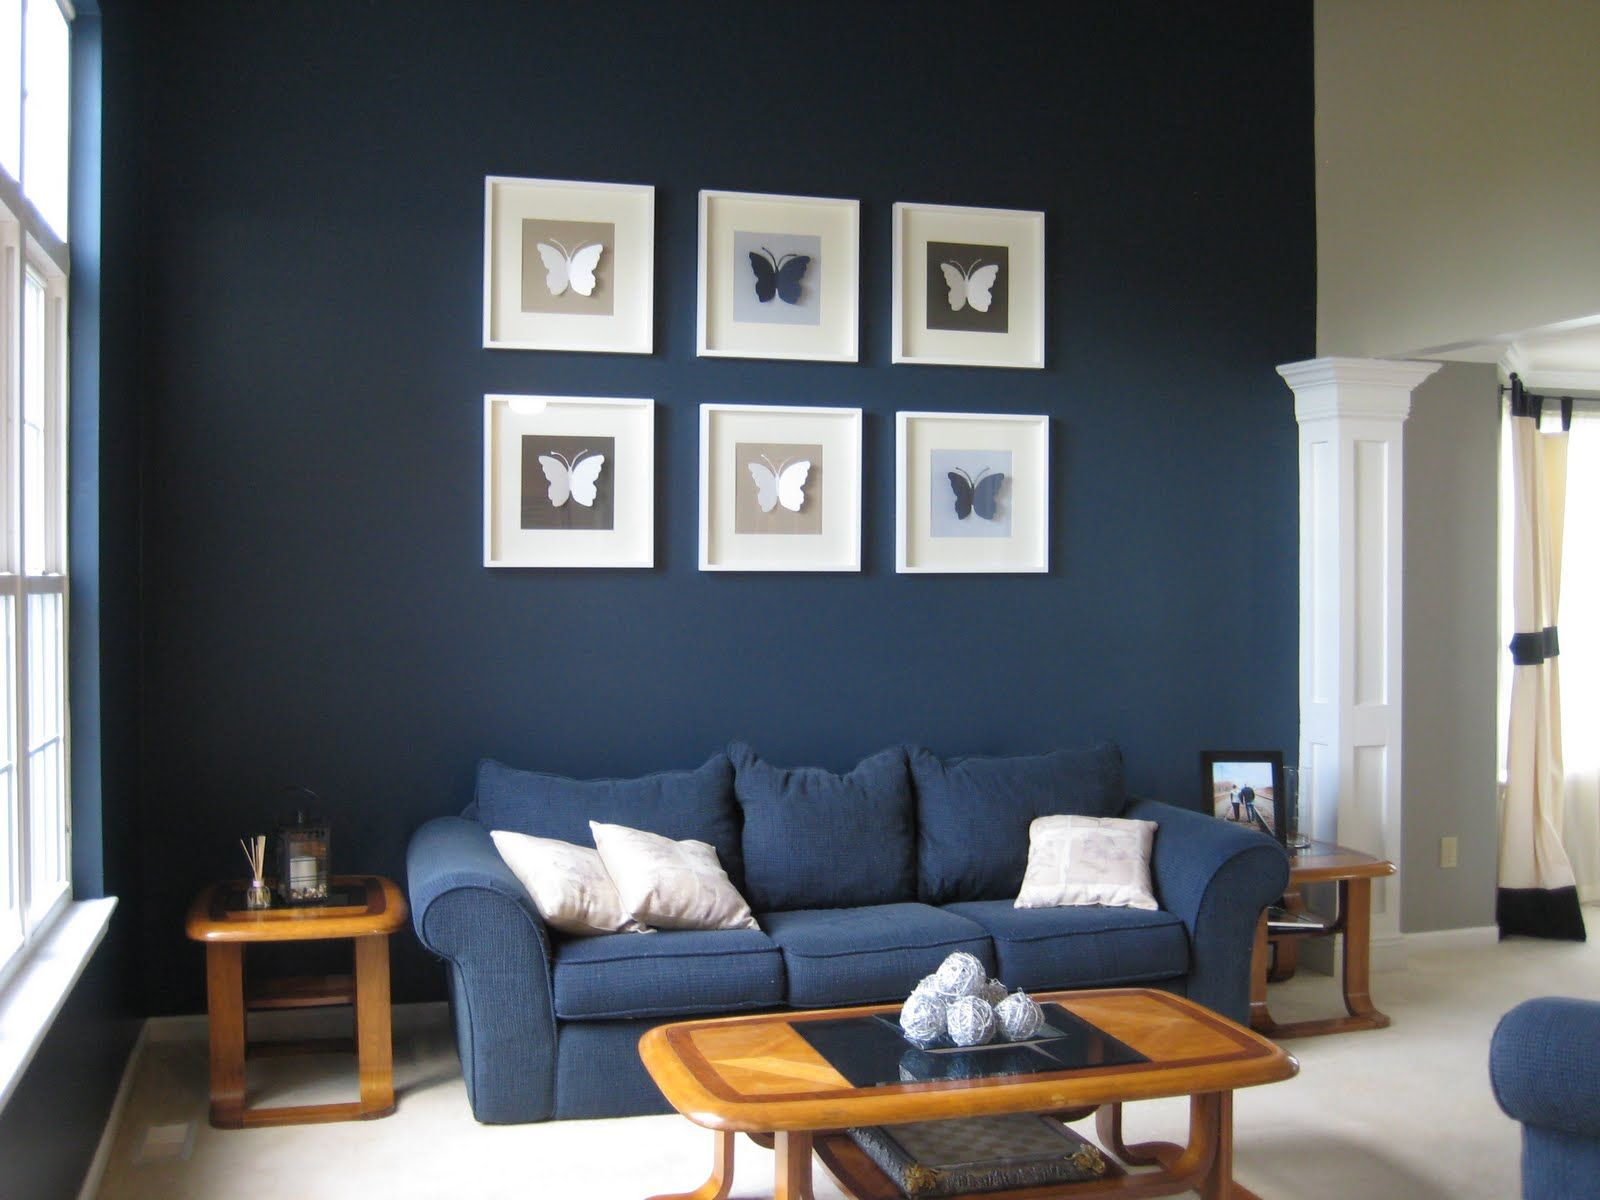 Pretty White Picture Frame With Wooden Material On Dark Blue Painted Wall  Together Black Butterfly Navy Living RoomsColors For RoomLiving